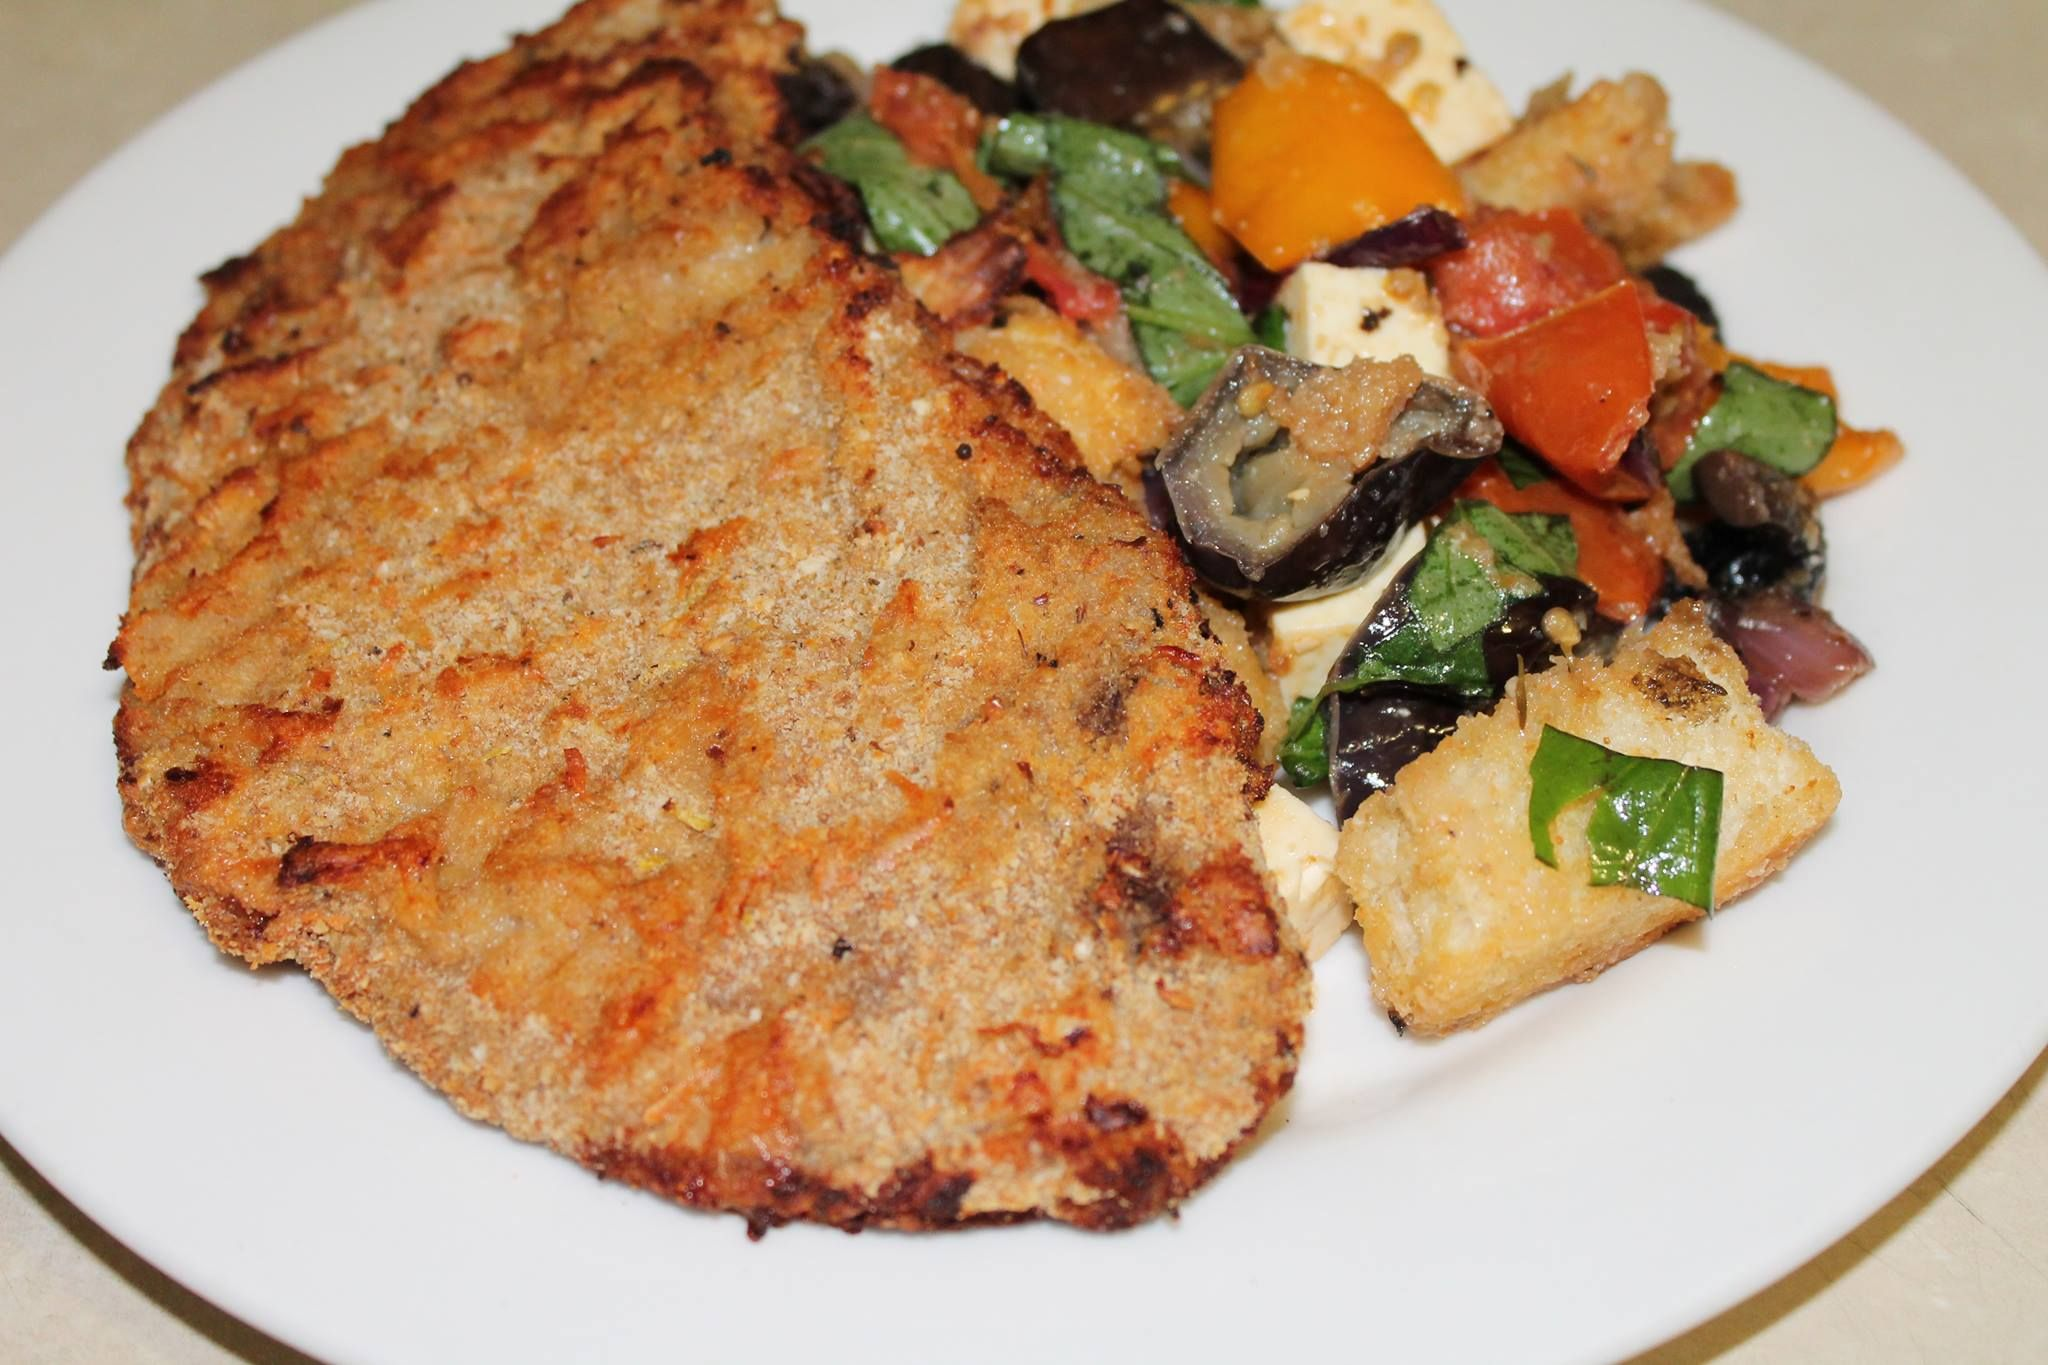 Parmesan and thyme crumbed veal chops with my version of Panzanella-